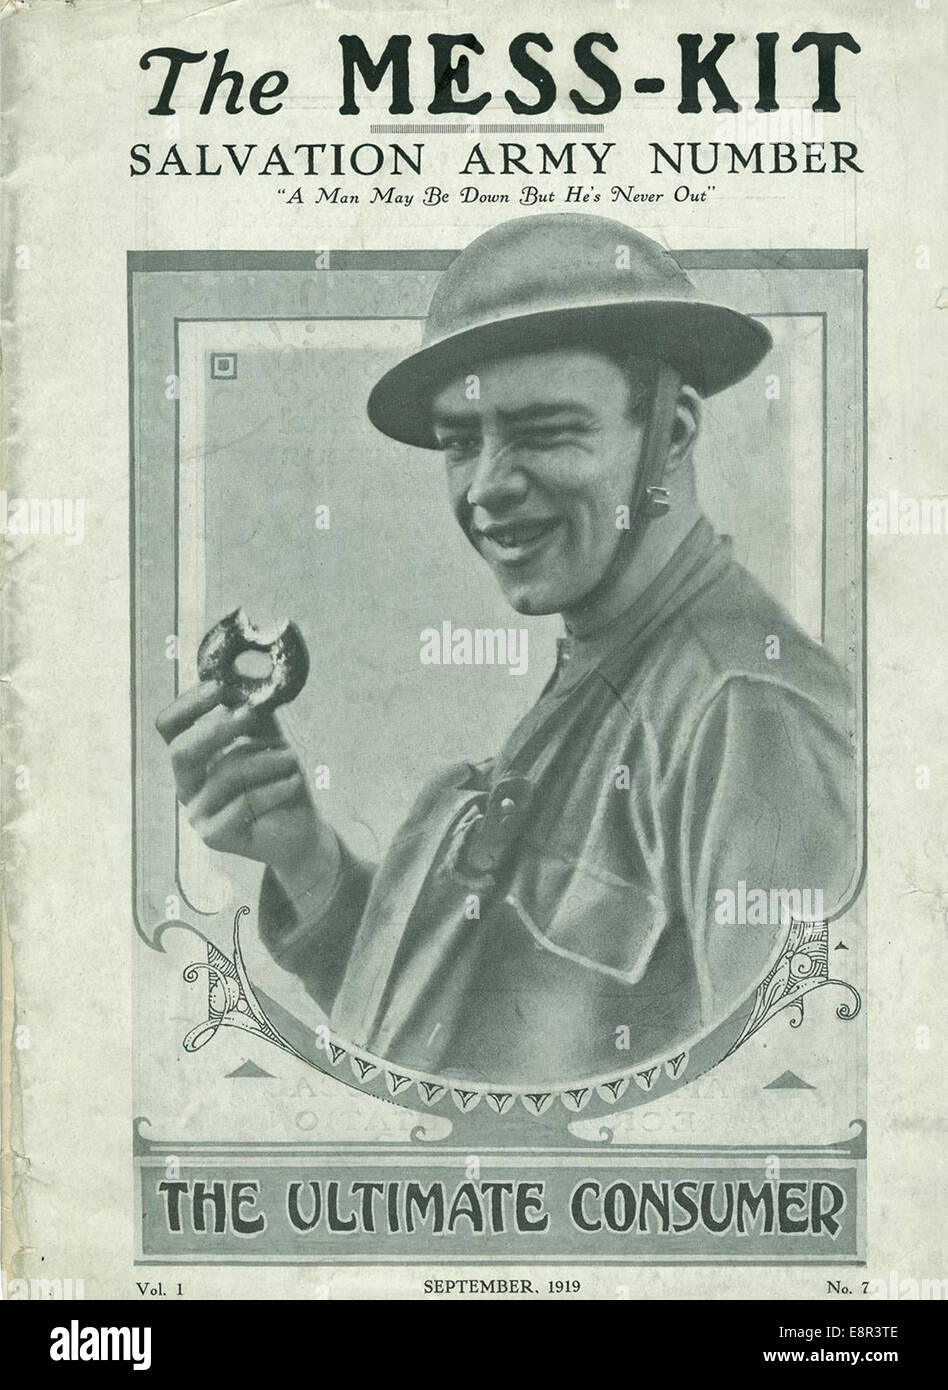 Appears In: Mess-Kit  Image Description: Image of the cover page of The mess-kit, vol. 1, no. 7 showing a male solider - Stock Image